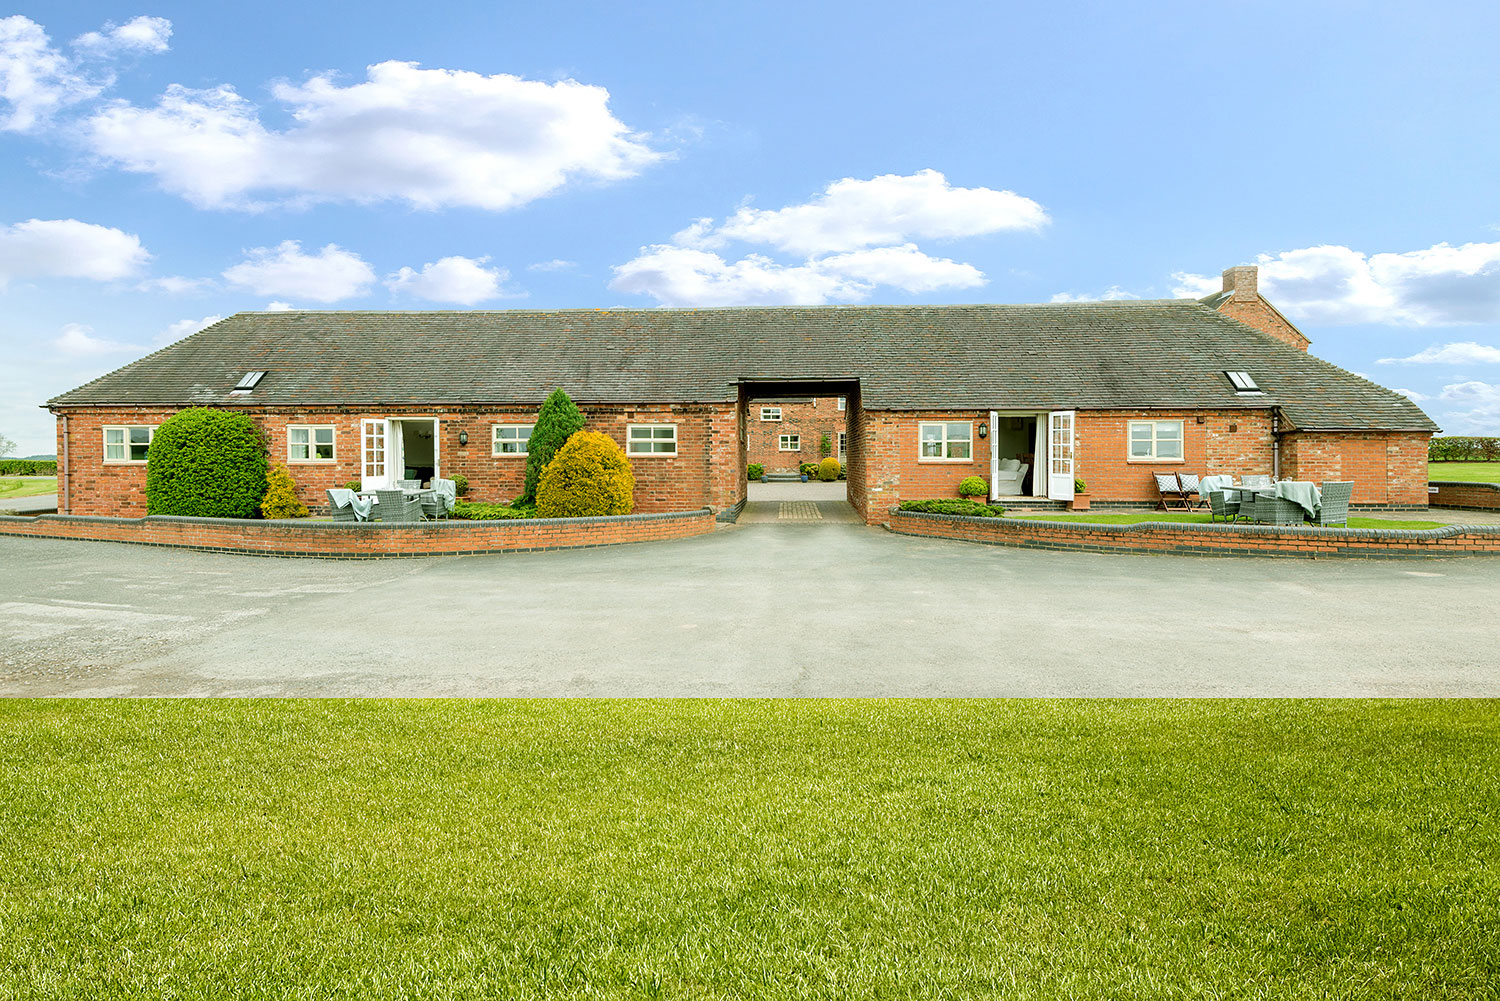 Mid week breaks, weekends away and family holidays at Upper Rectory Farm Cottages